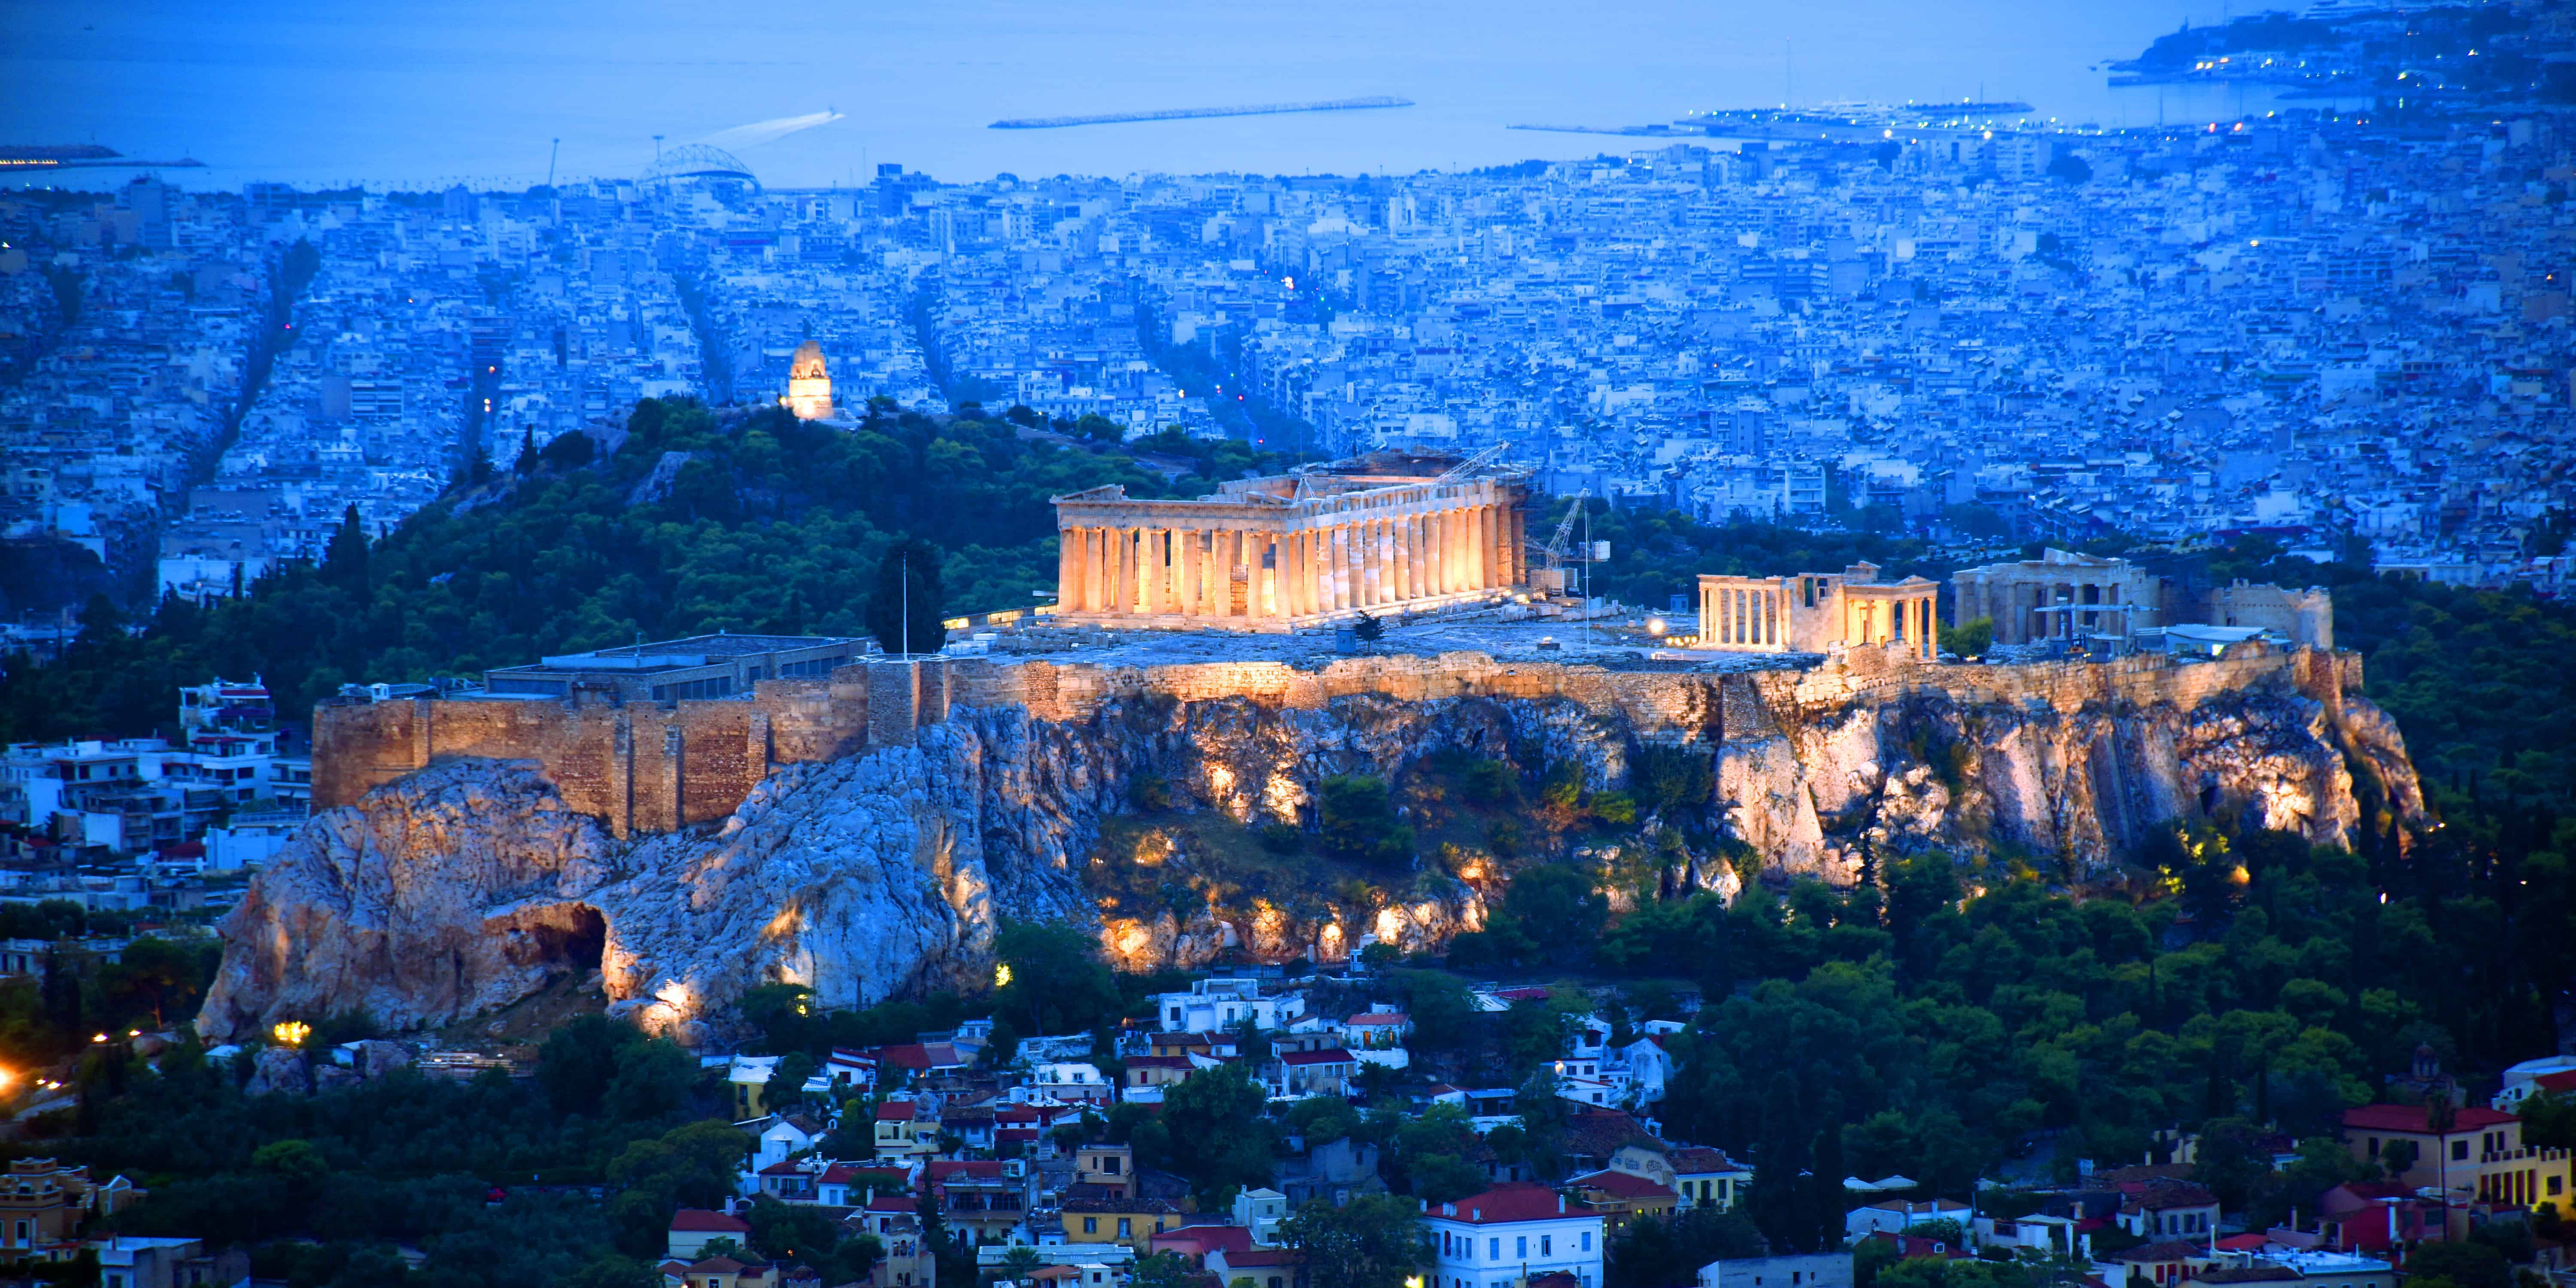 Acropolis at dawn from Mt Lycabettus